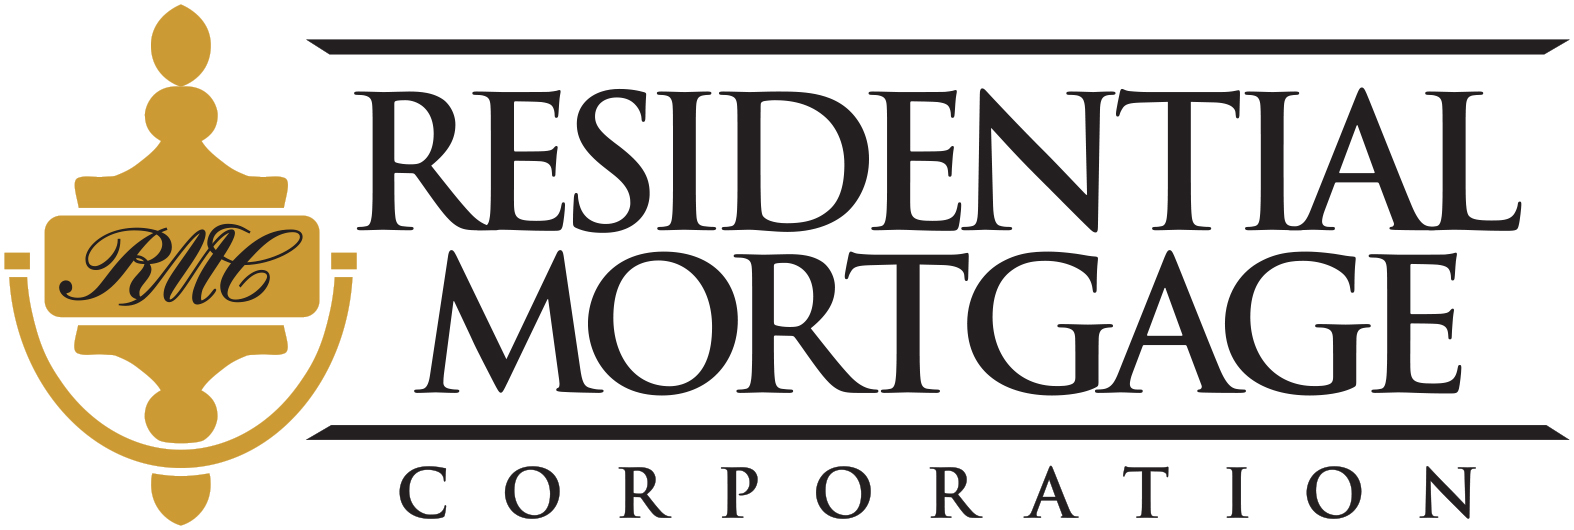 Residential Mortgage Company